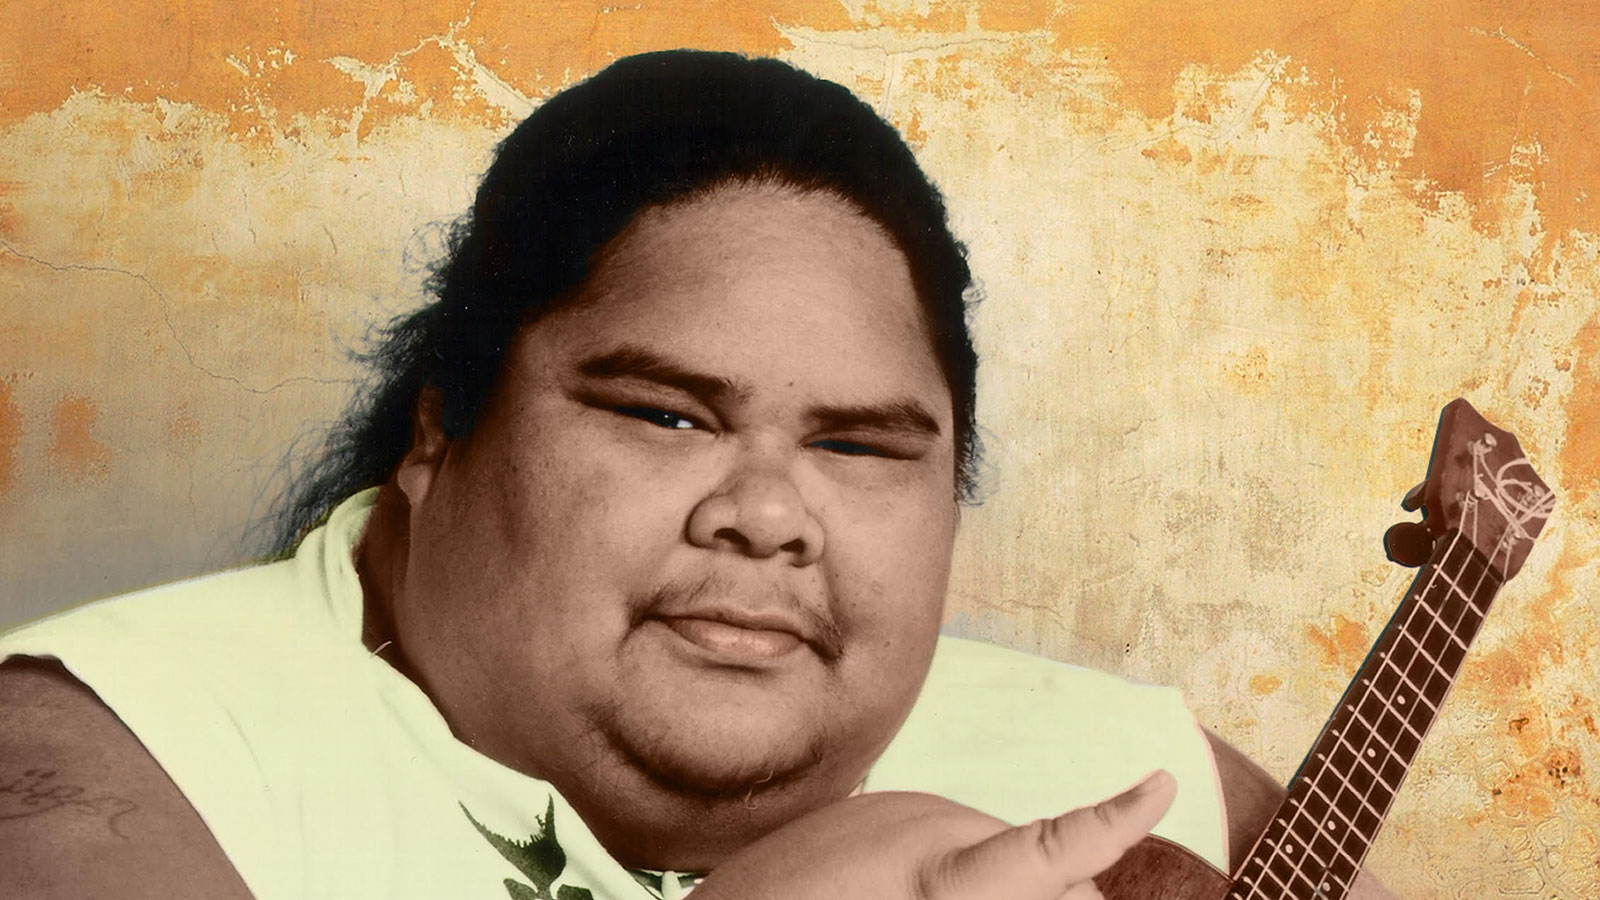 Remembering Israel 'IZ' Kamakawiwo'ole, the Voice of Hawaii